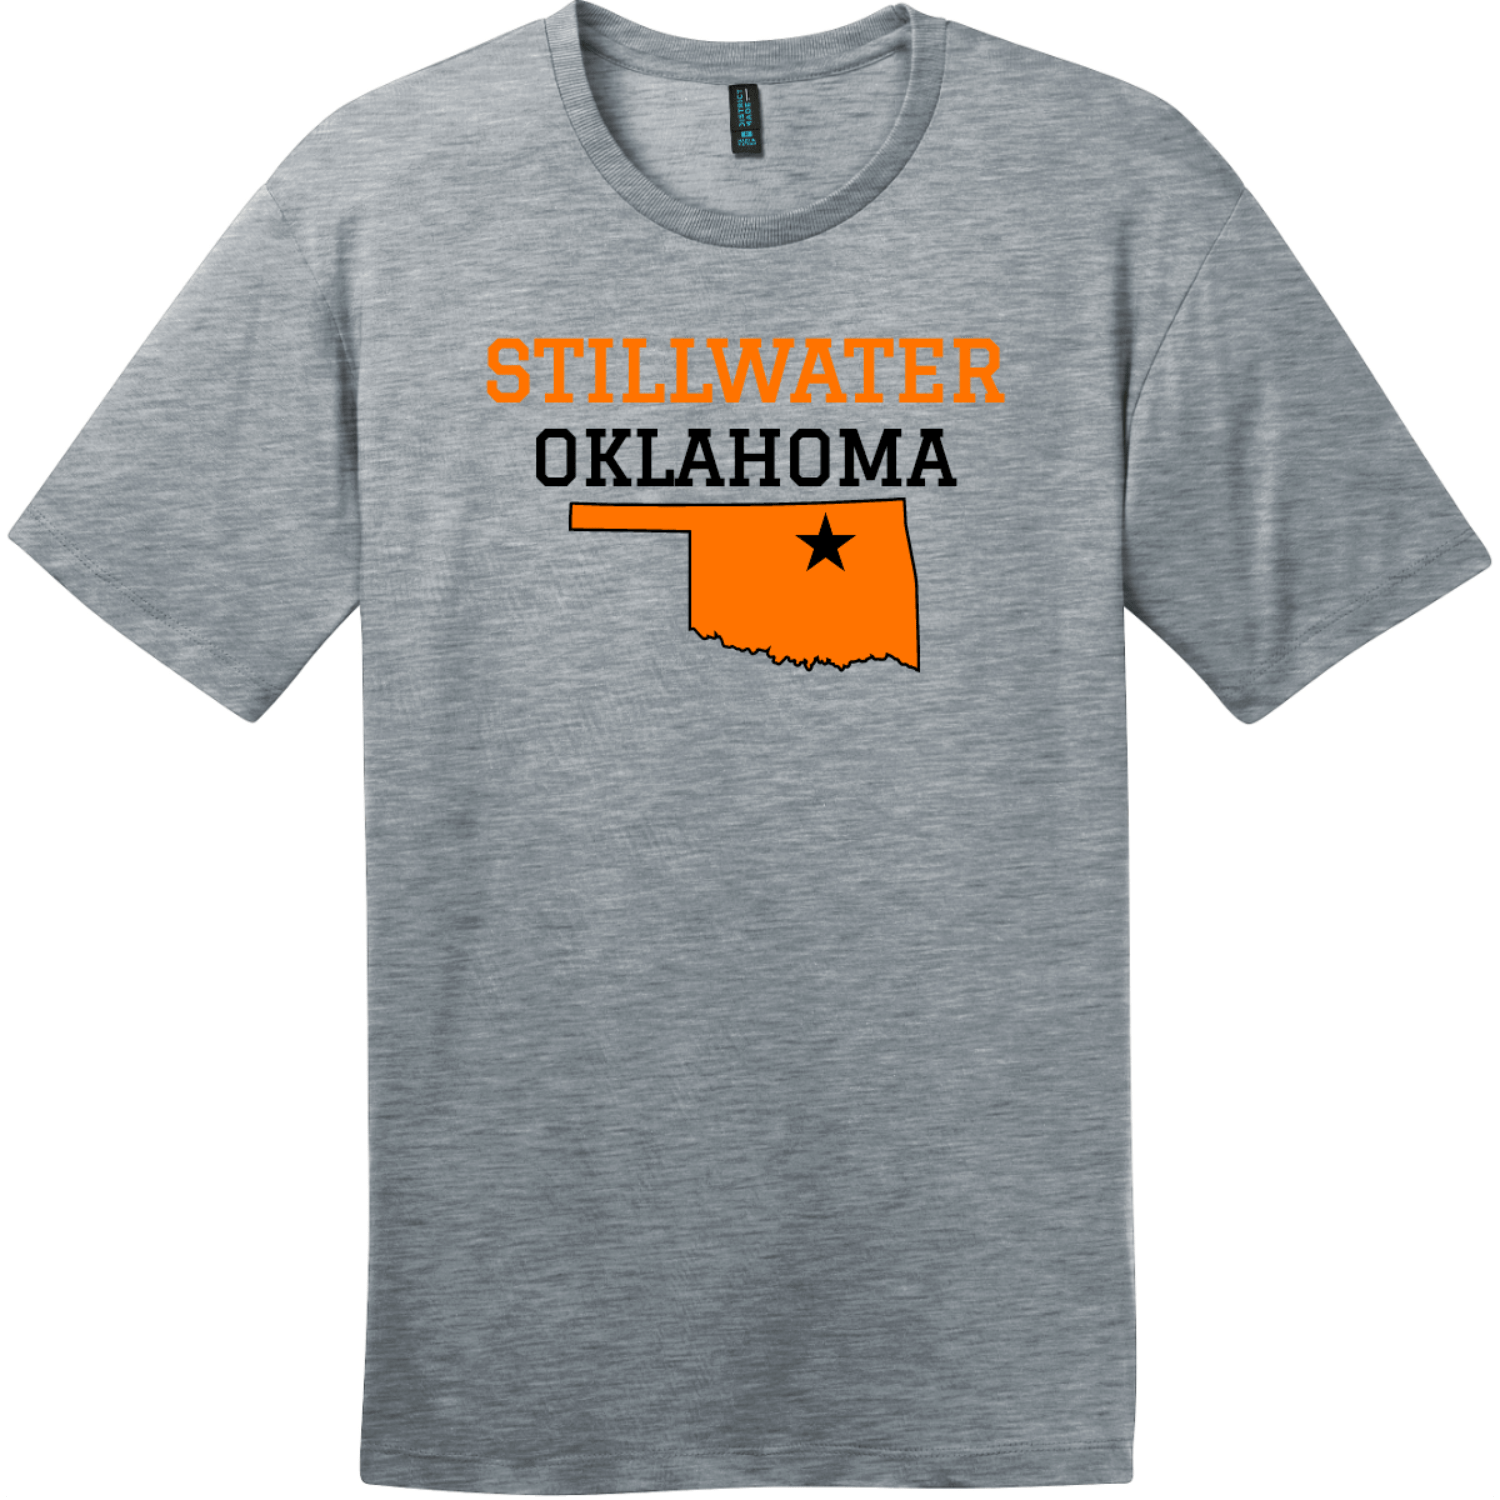 Stillwater Oklahoma T-Shirt Heathered Steel District Perfect Weight Tee DT104